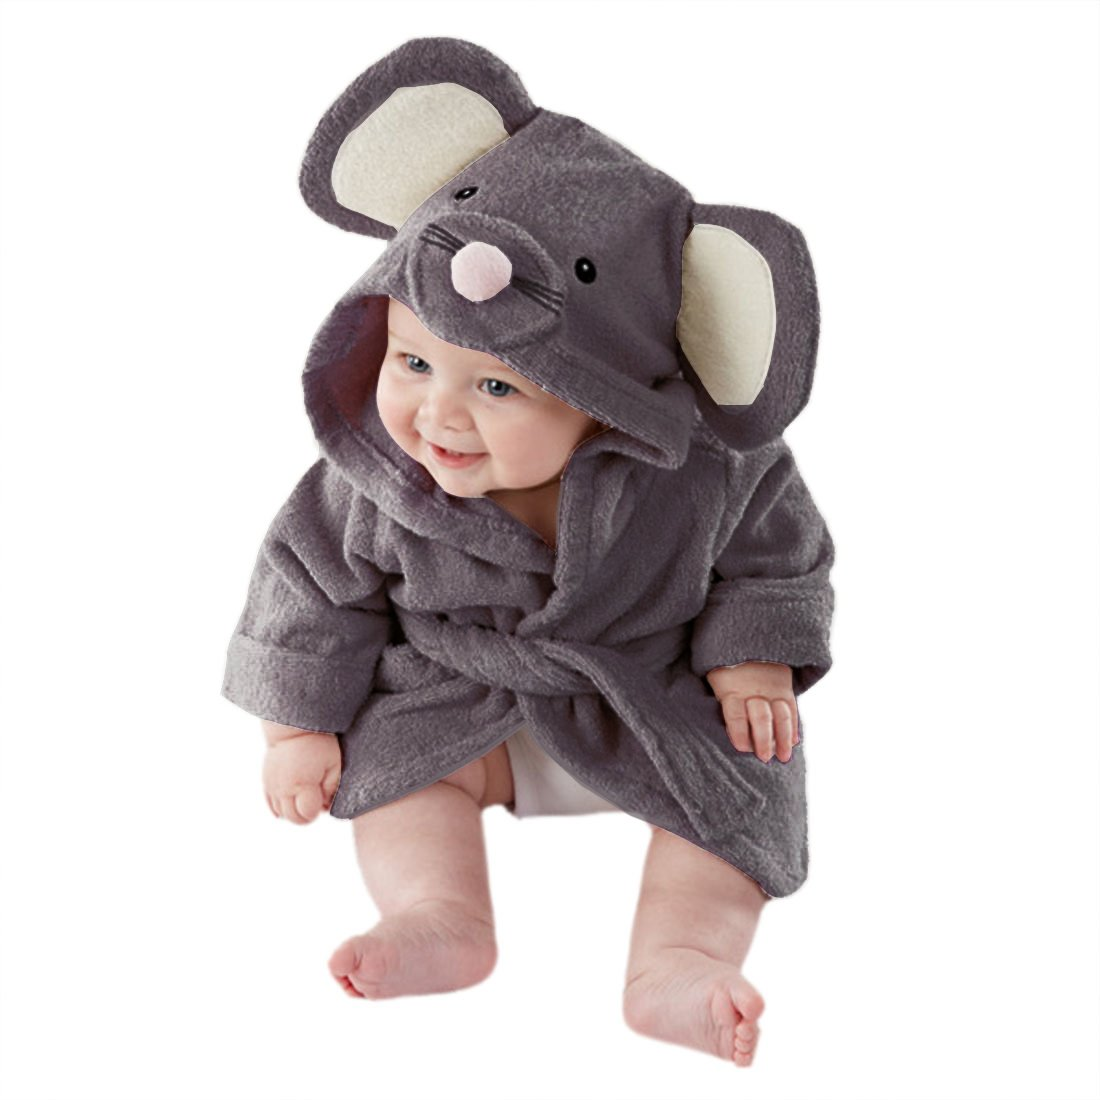 Casa Baby Hooded Bathrobe Nightgown Pajamas 3D Cartoon Animal Towel Girl Boy Bathrobe Cloak Ultra-Soft Fleece Kid Blanket 90-130cm